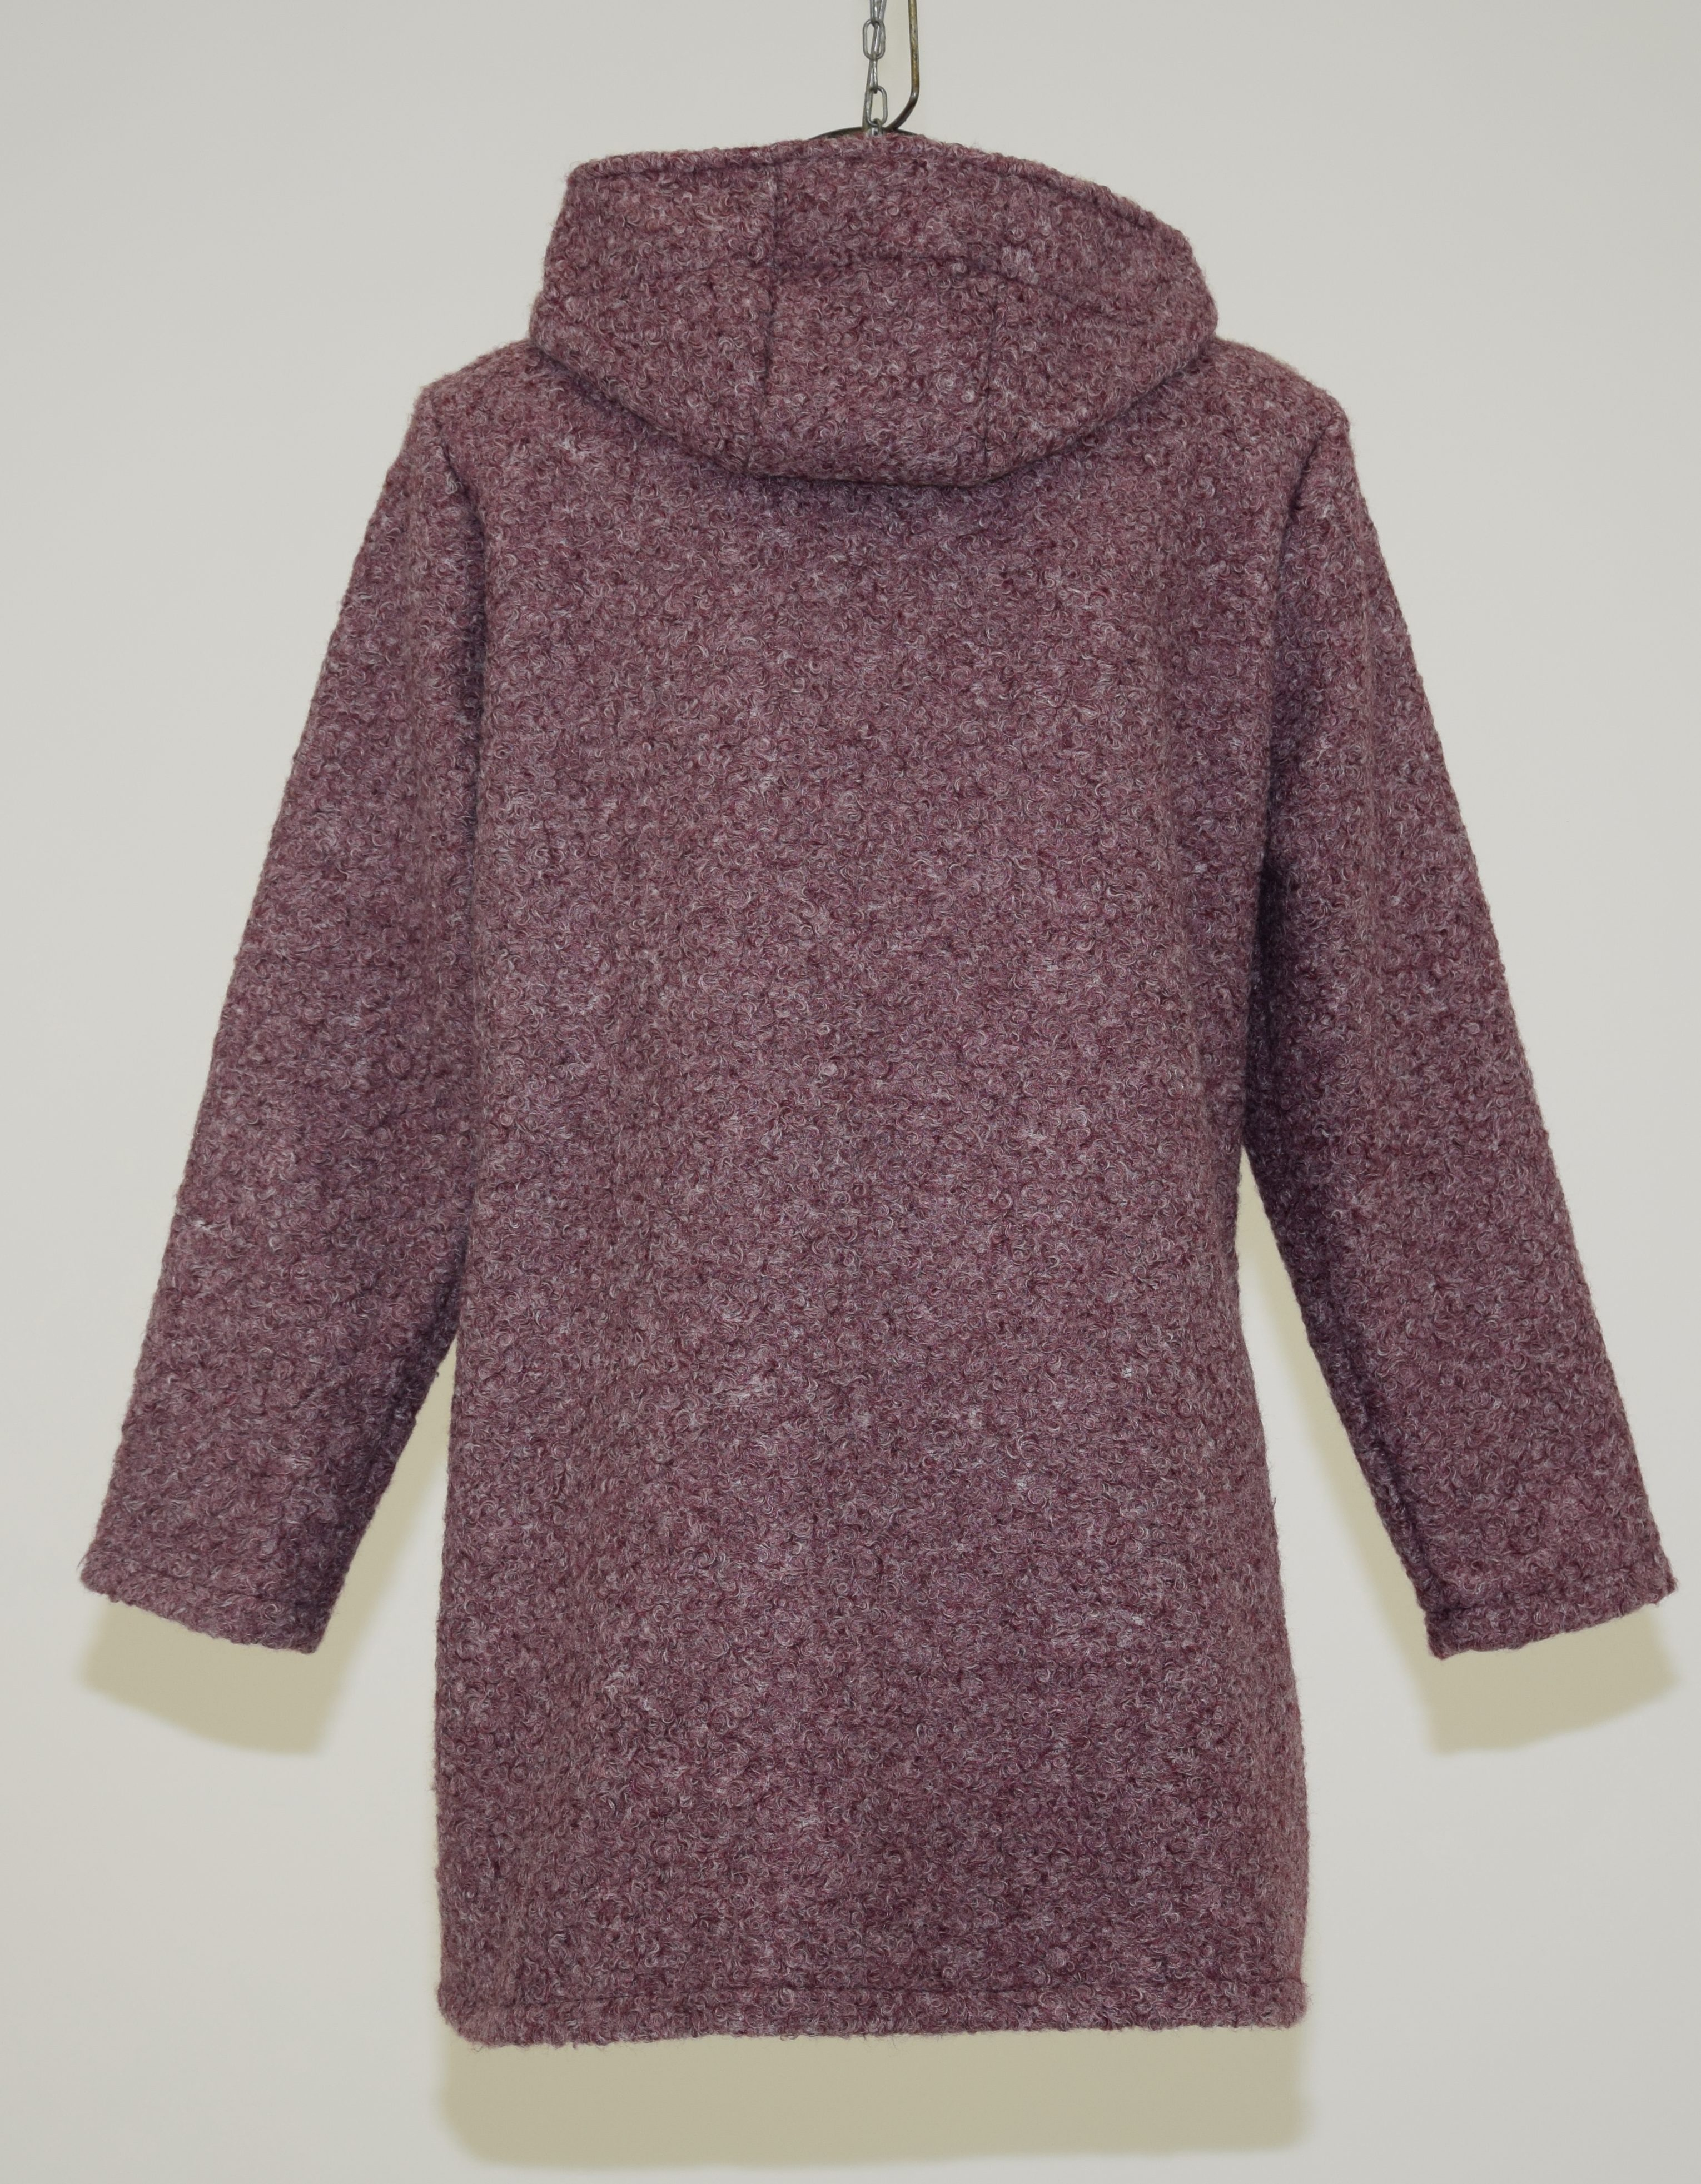 wholesale dealer ff51e a99d6 Cappotto in lana cotta con cappuccio e maniche lunghe ...